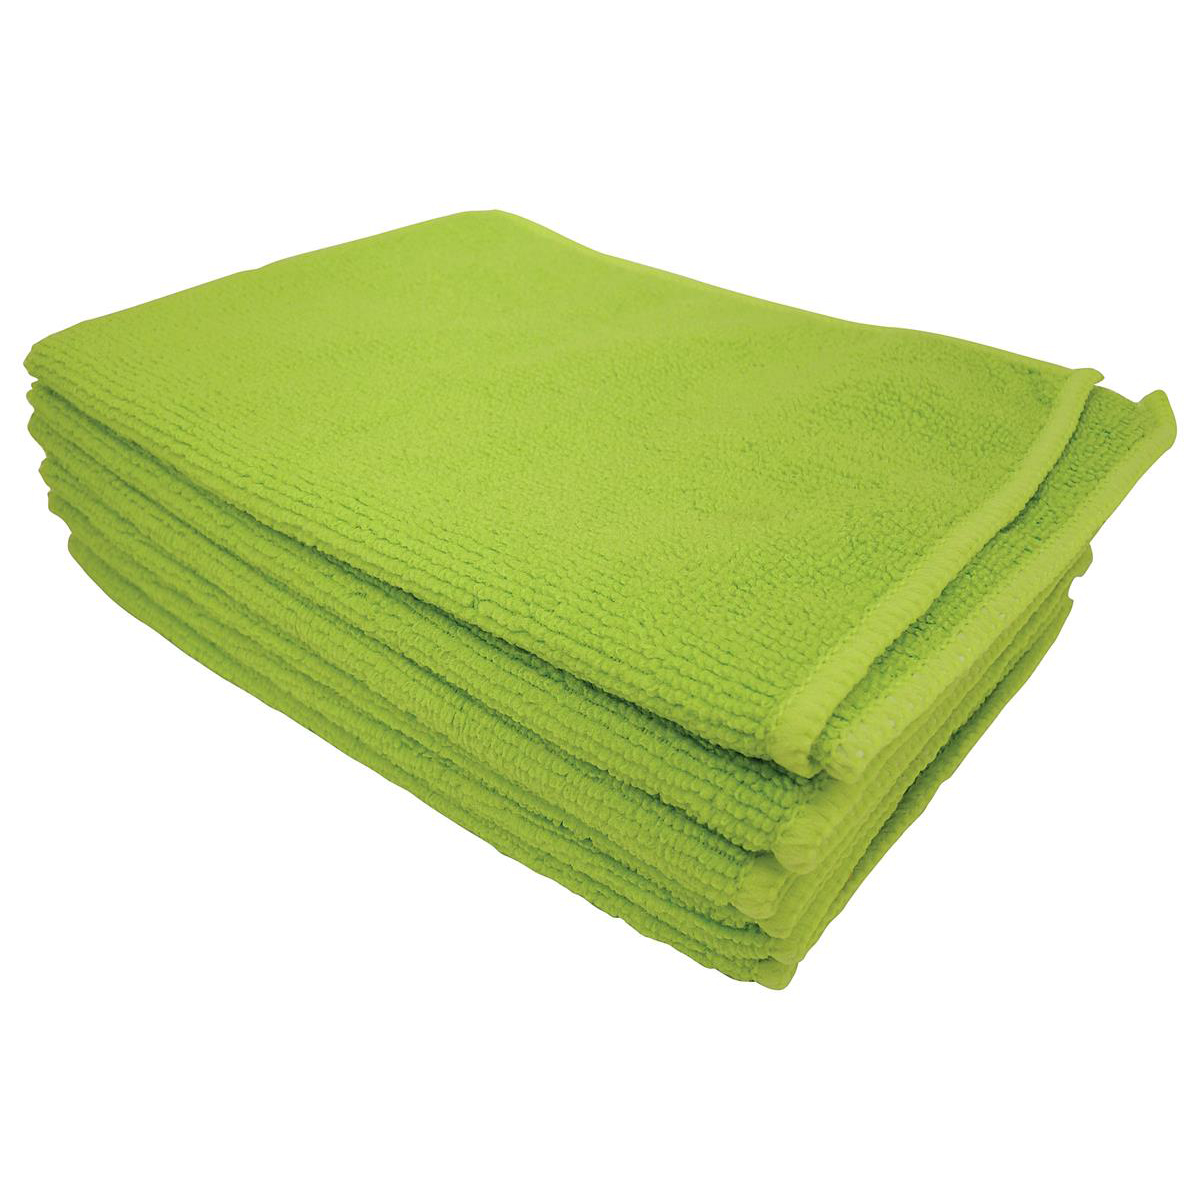 Cloths / Dusters / Scourers / Sponges 5 Star Facilities Microfibre Cleaning Cloth Colour-coded Multi-surface Green Pack 6